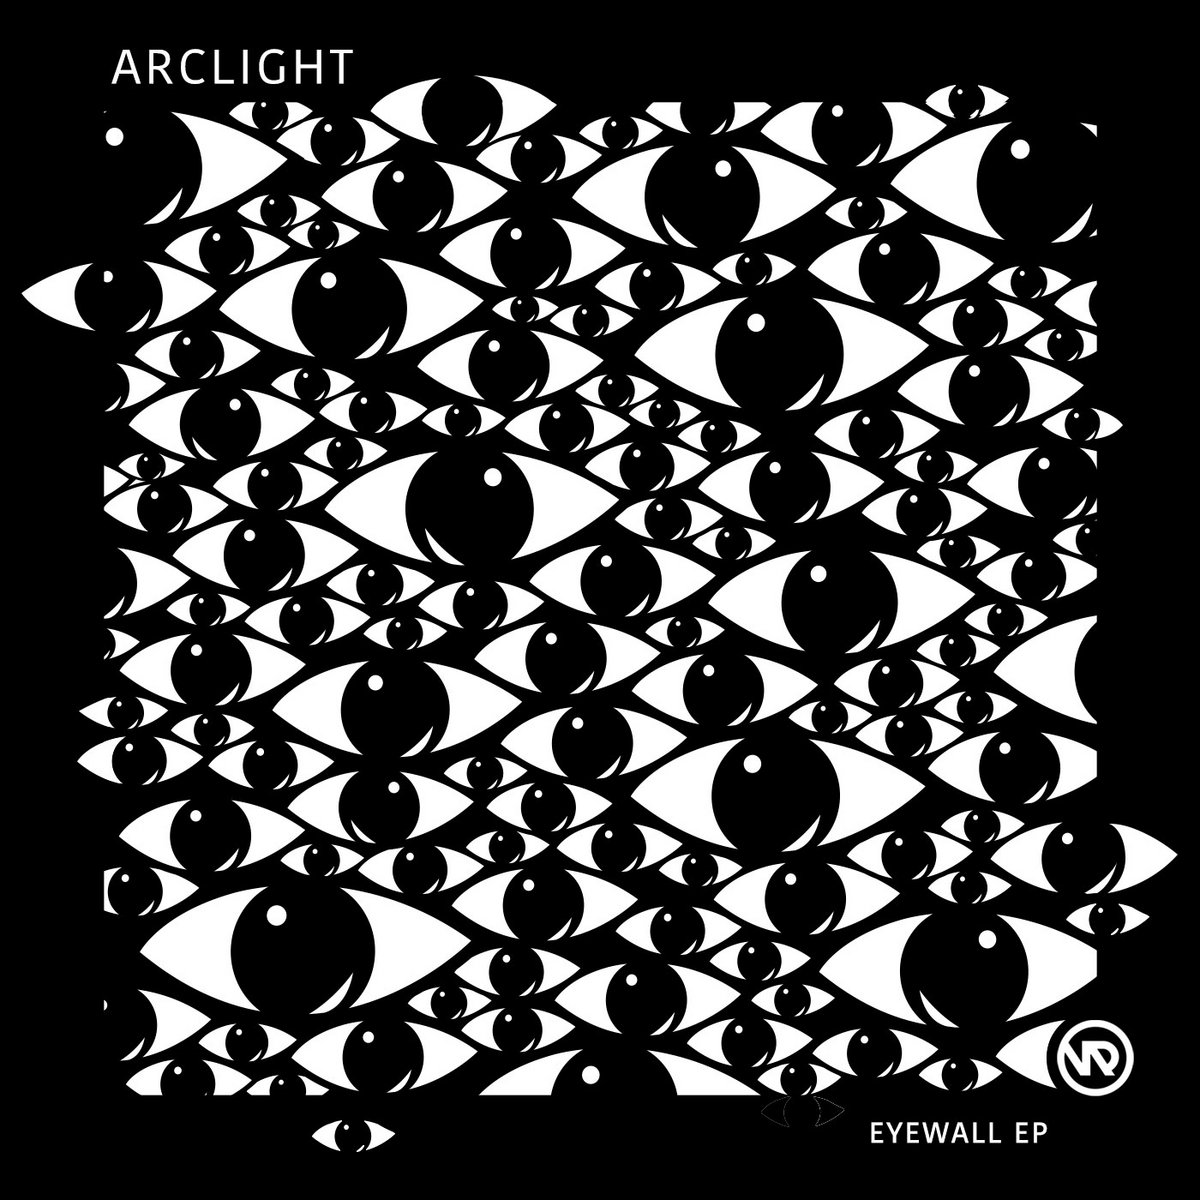 VDL 043 - Arclight - EyeWall EP | Vandal Records